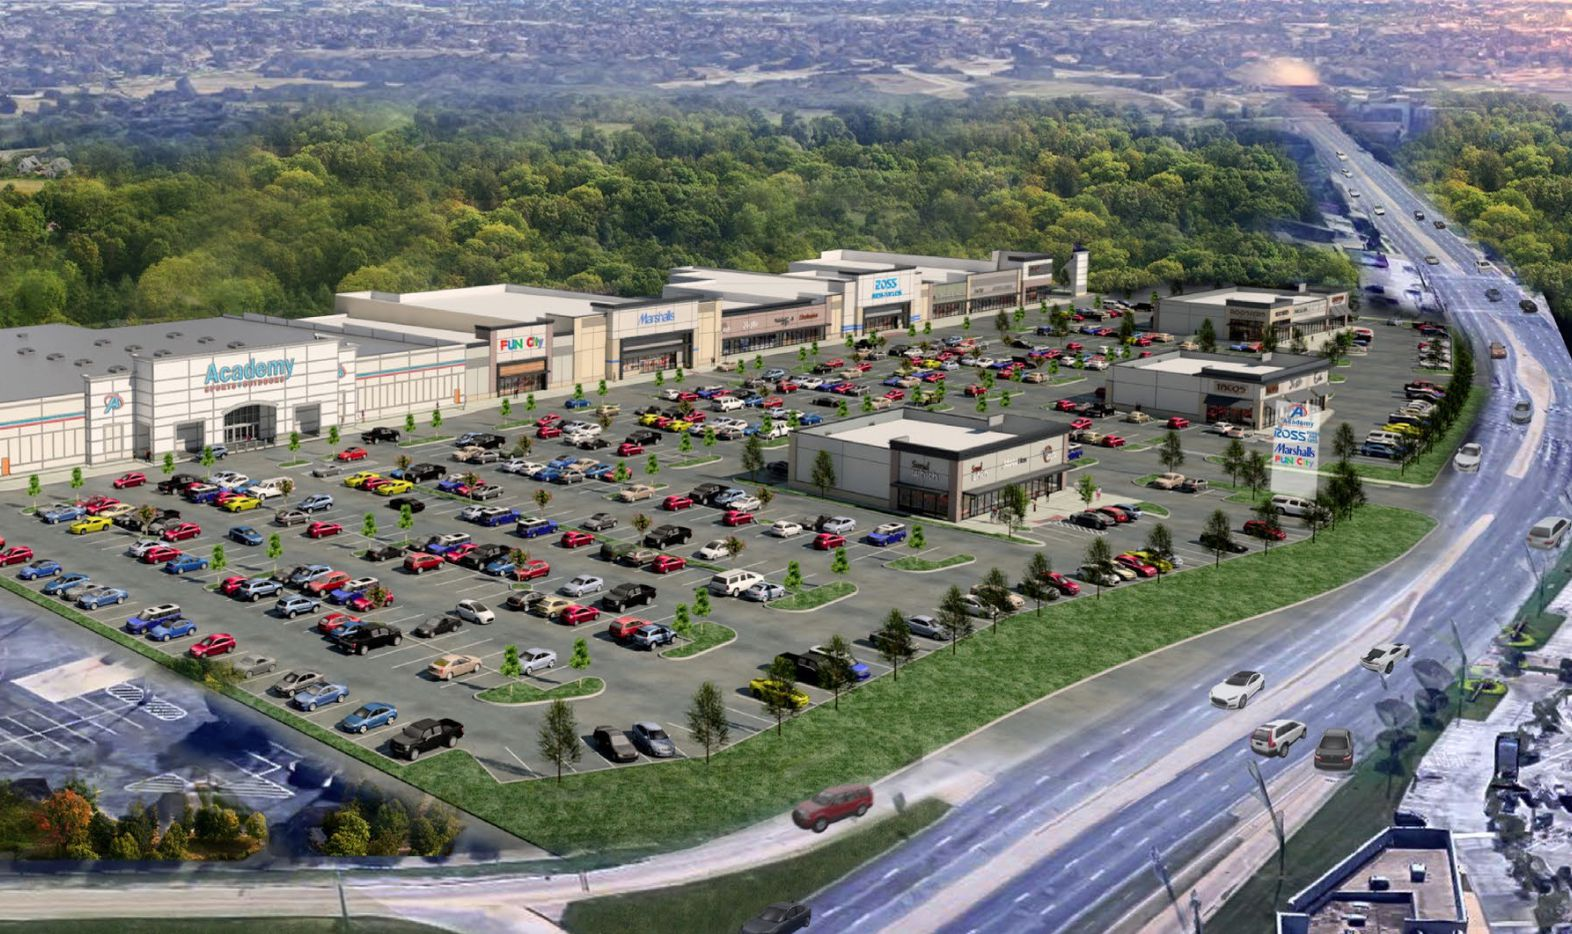 The High Point Crossing shopping center is being built on Northwest Highway just east of U.S. Highway 75.